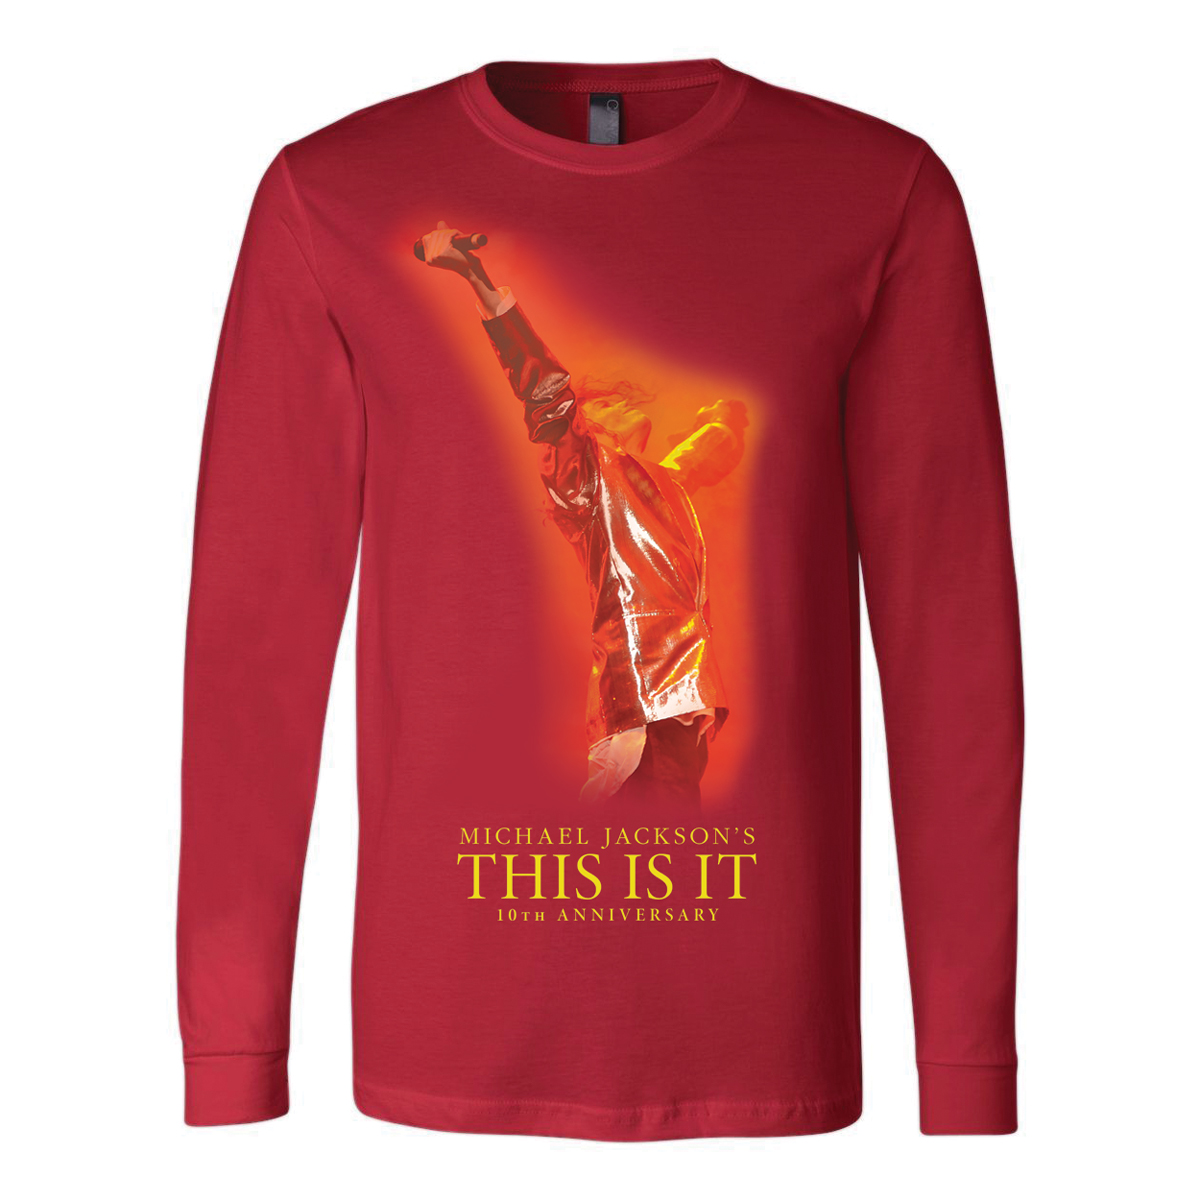 Michael Jackson's This Is It - Red Long Sleeve T-Shirt